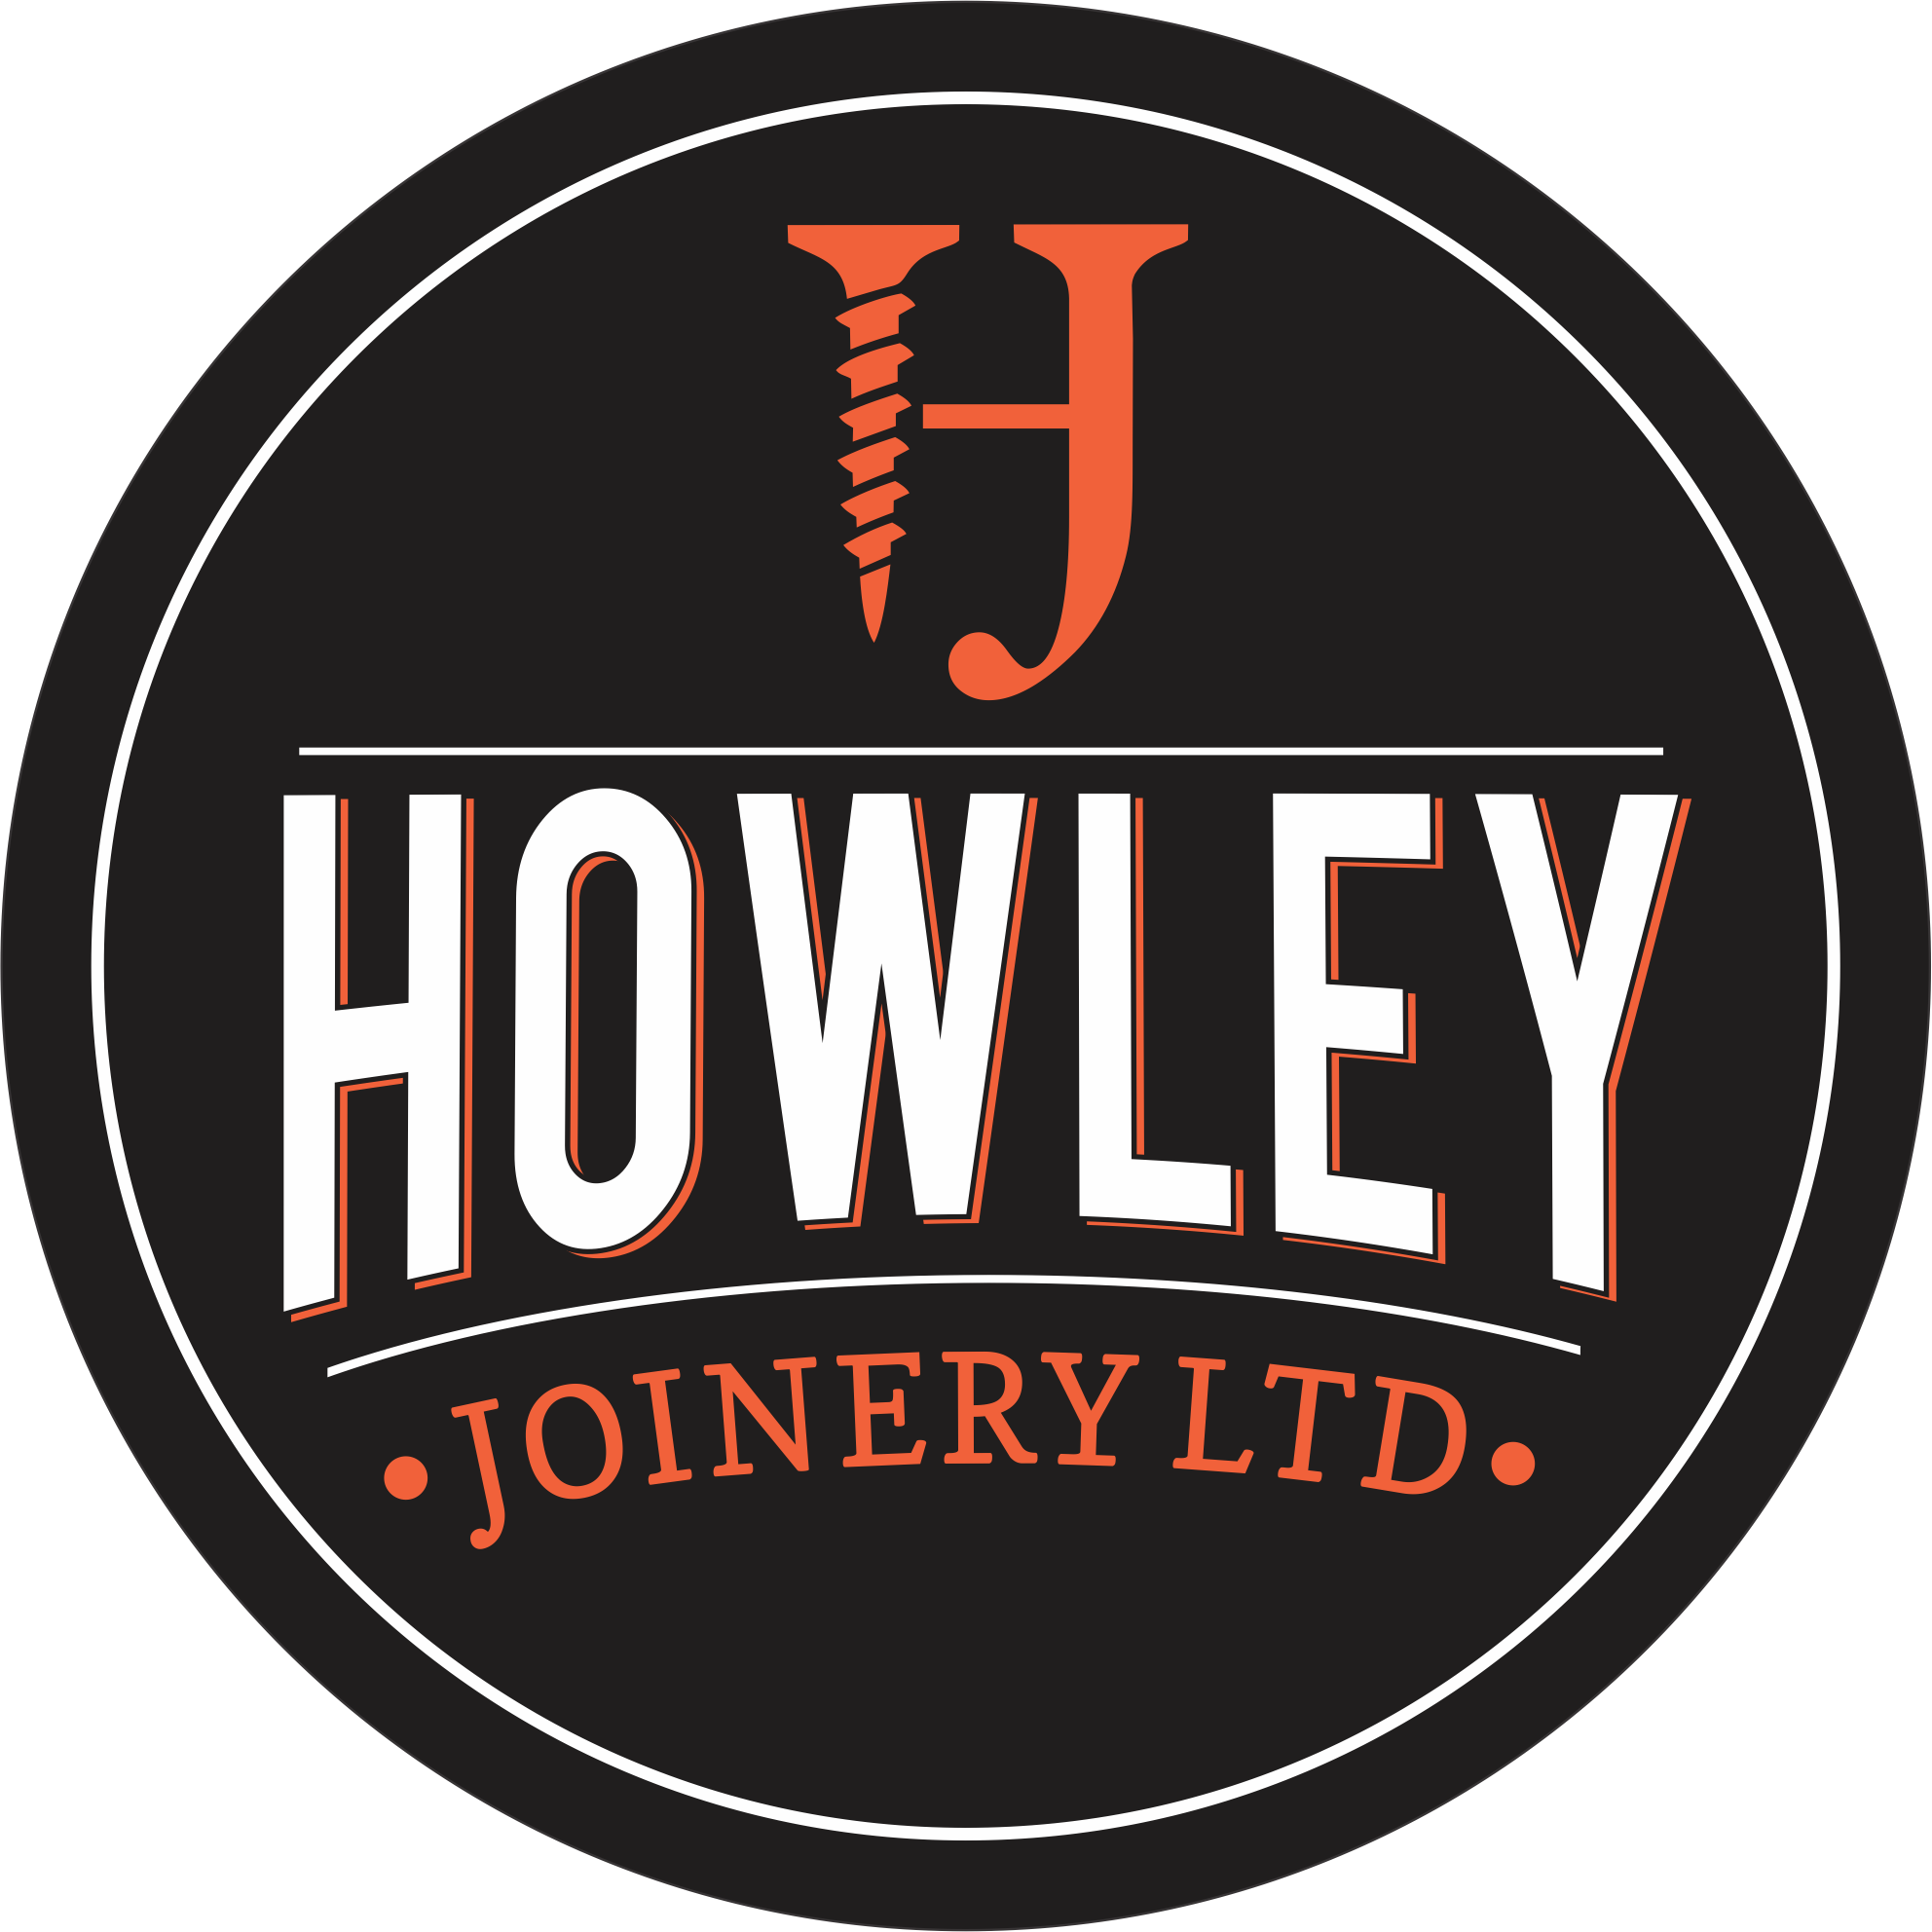 Howley Joinery